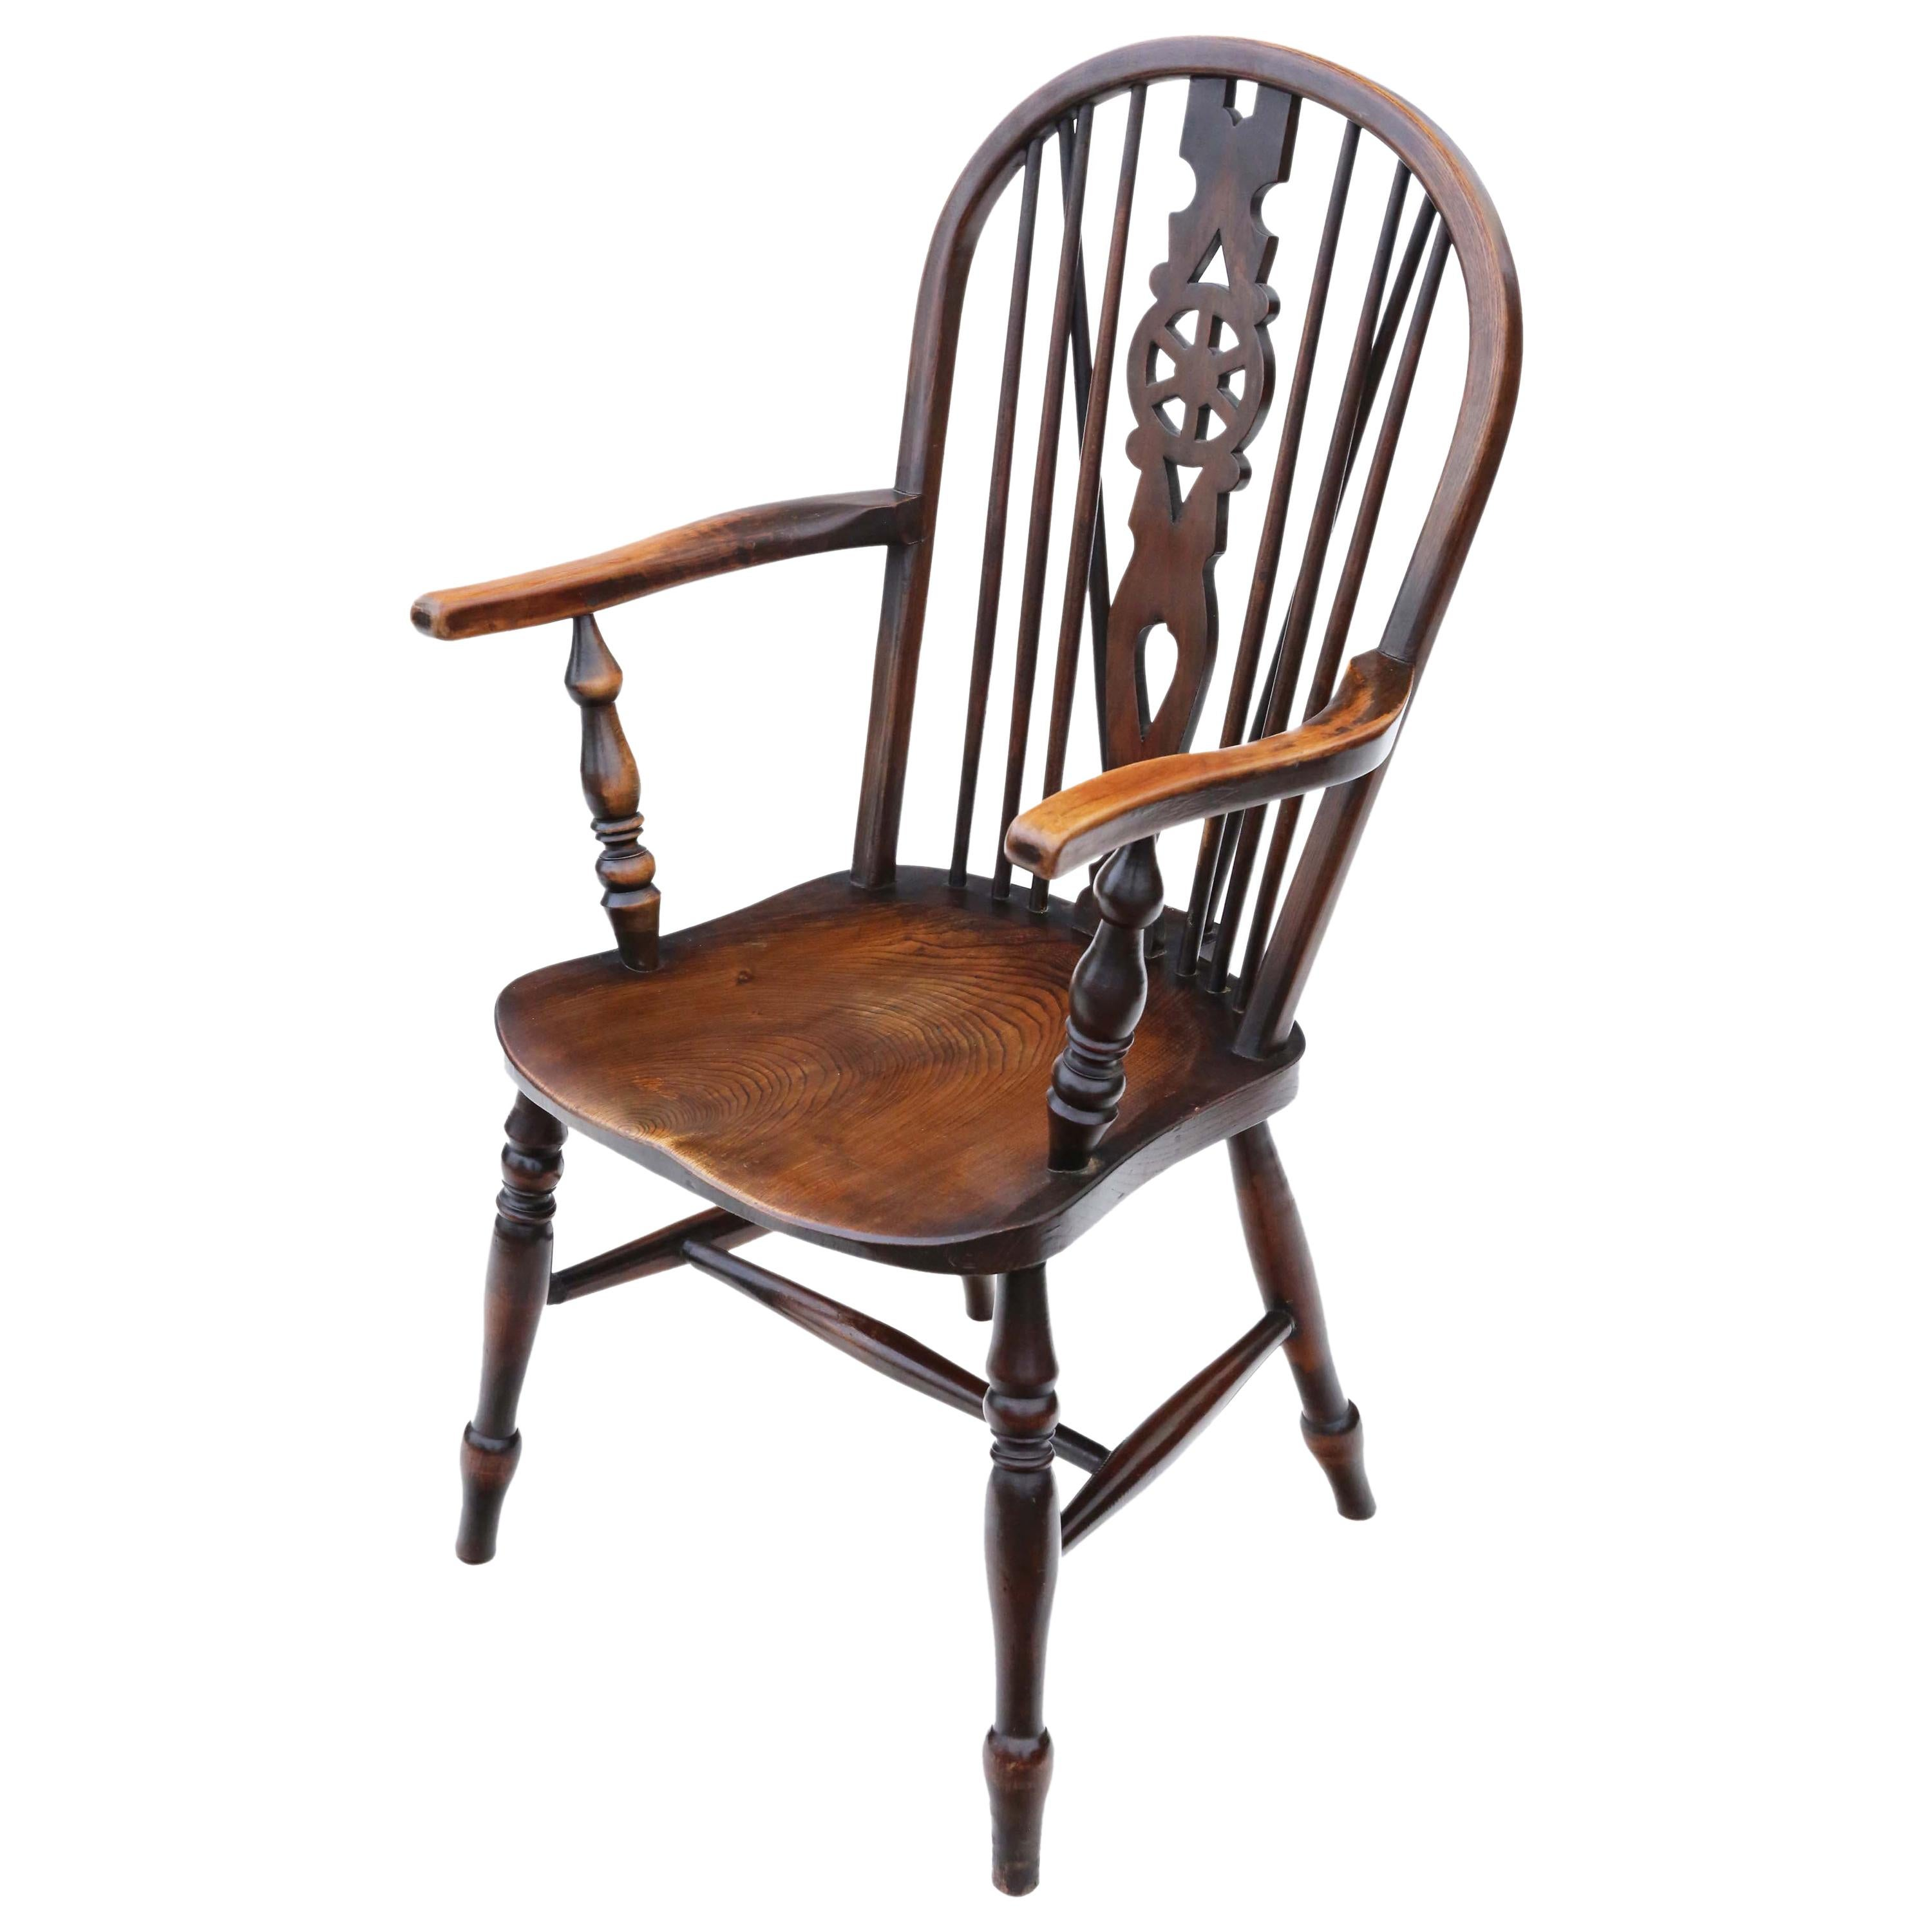 Antique Victorian C1900 Ash and Elm Windsor Chair Wheel Back Dining Armchair